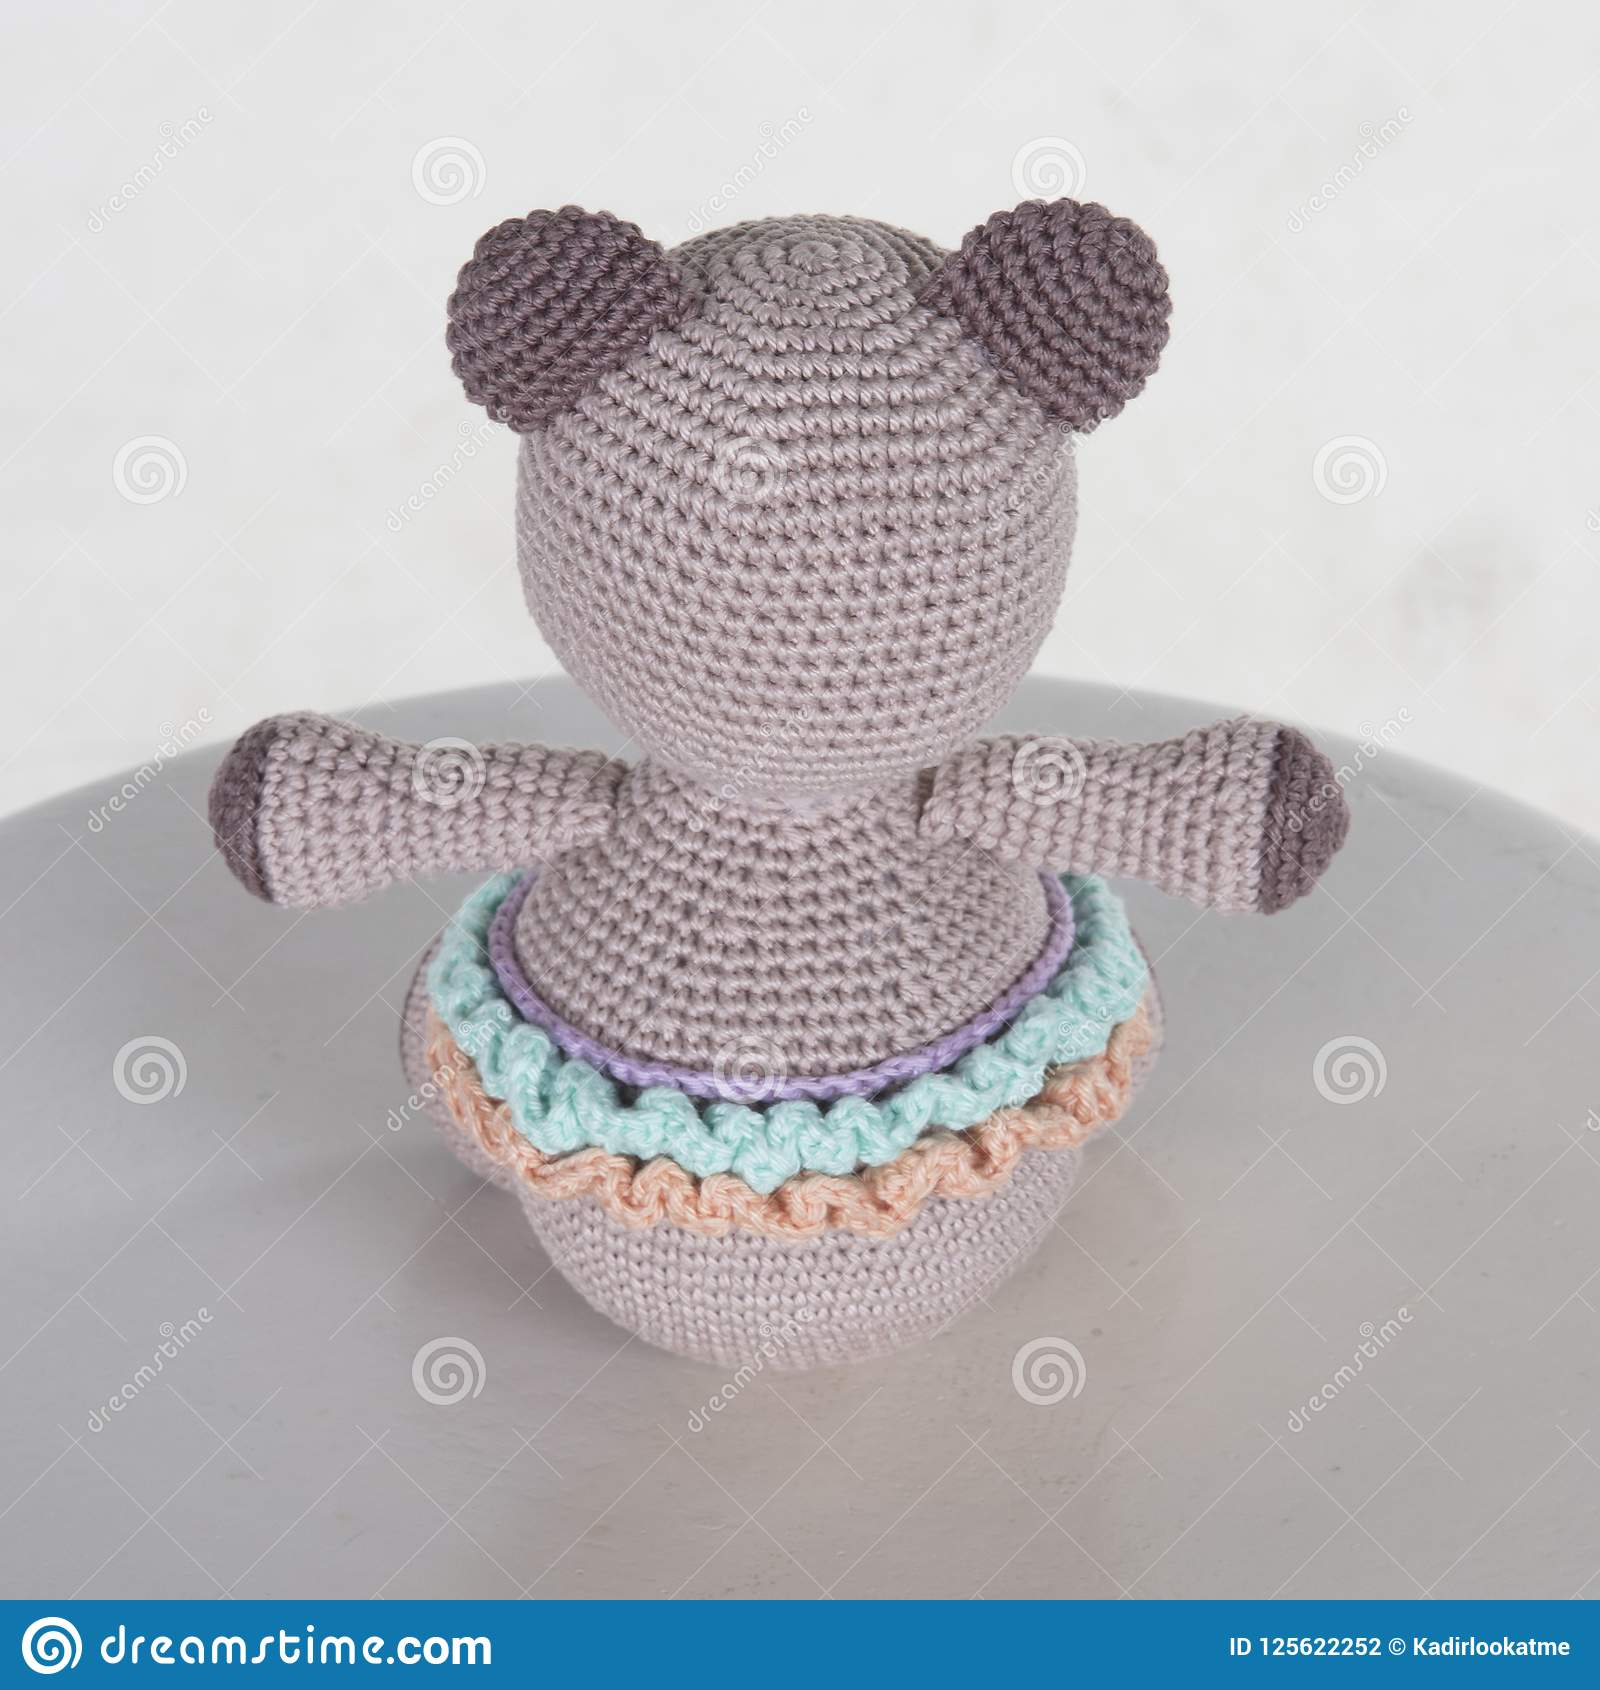 How to Embroider Almost Perfect Amigurumi Eyes | Crochet Arcade | 1690x1600